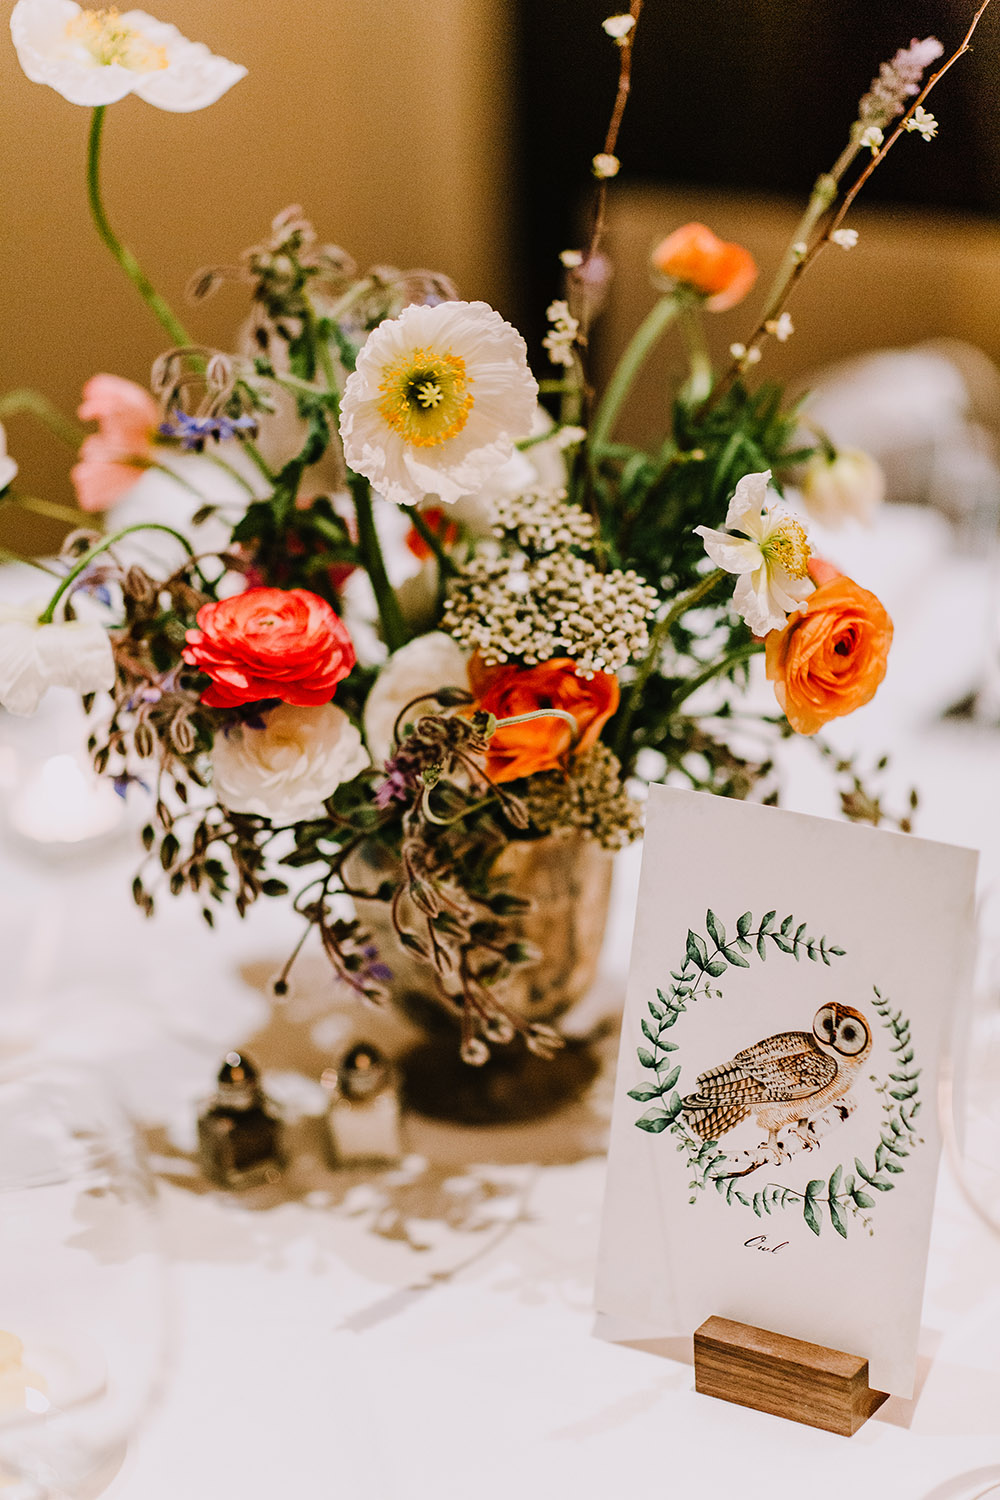 Arrangements of wildflowers graced the tables at the reception. Photo: Ashley Biltz